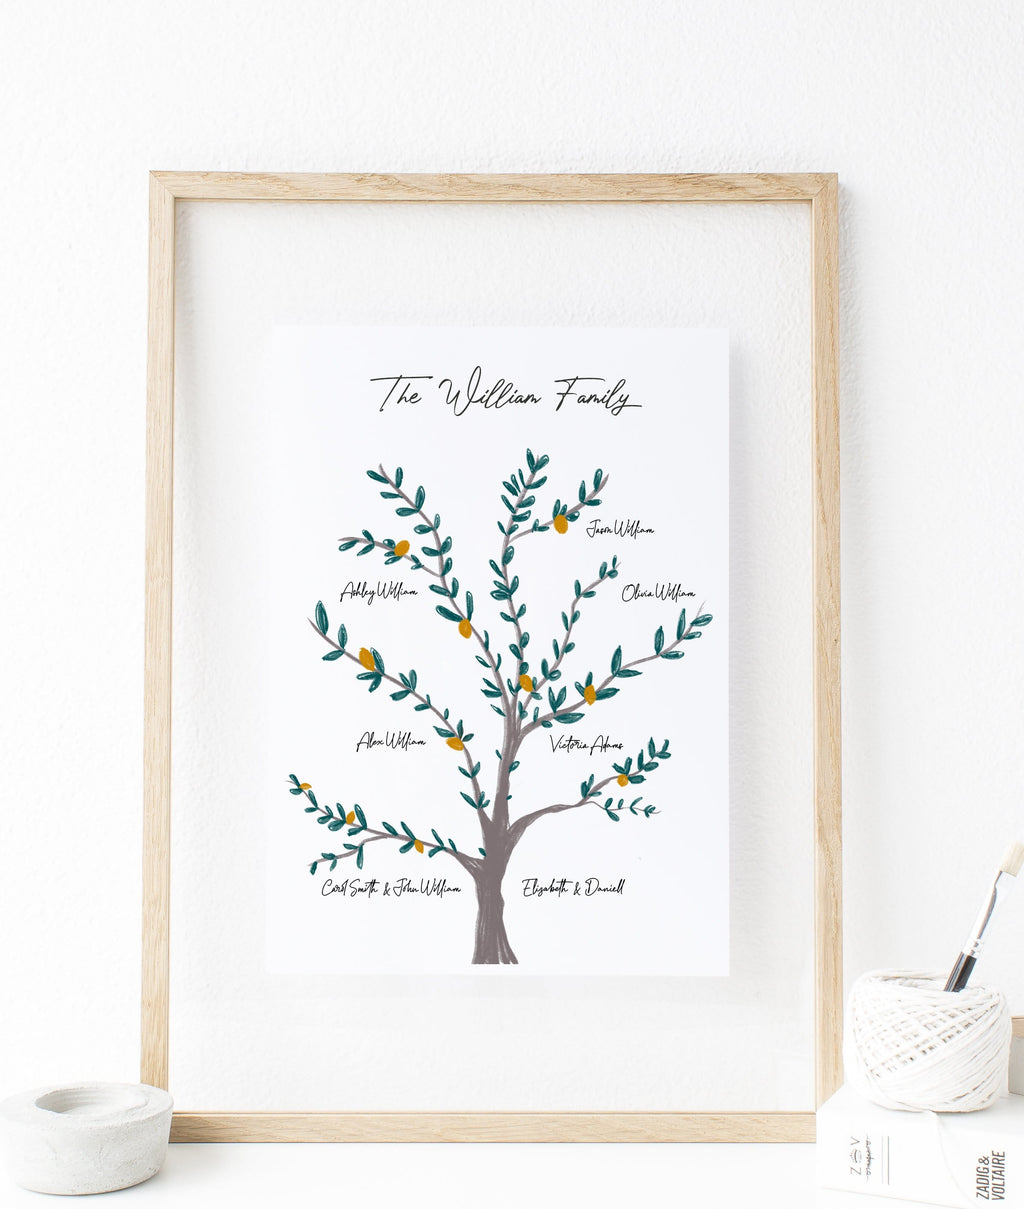 personalized family tree wall art with names, unique family gifts for Christmas 2020